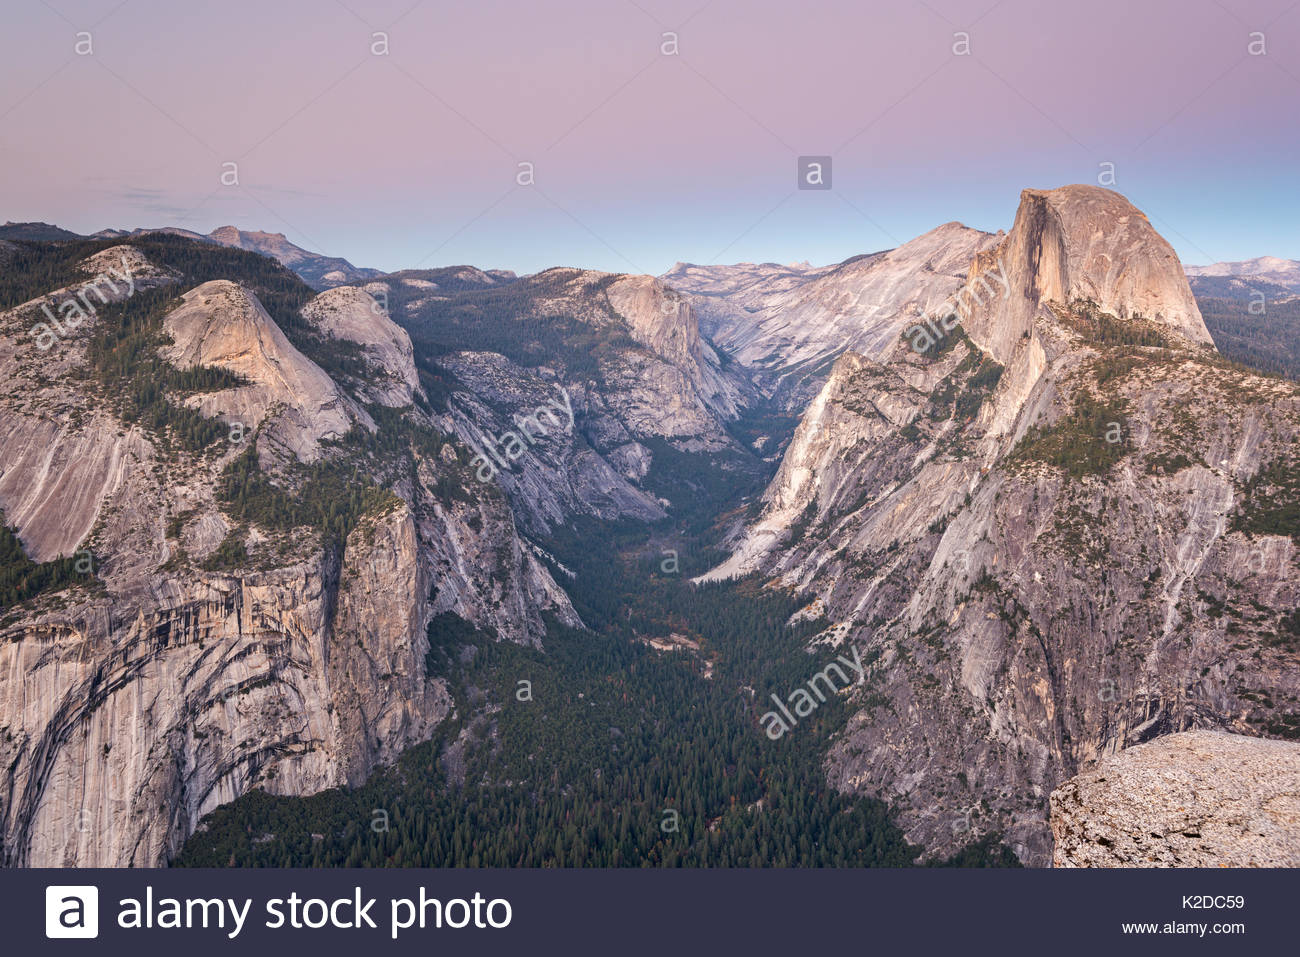 Half Dome and Yosemite Valley from Glacier Point, California, USA. October 2013. Stock Photo